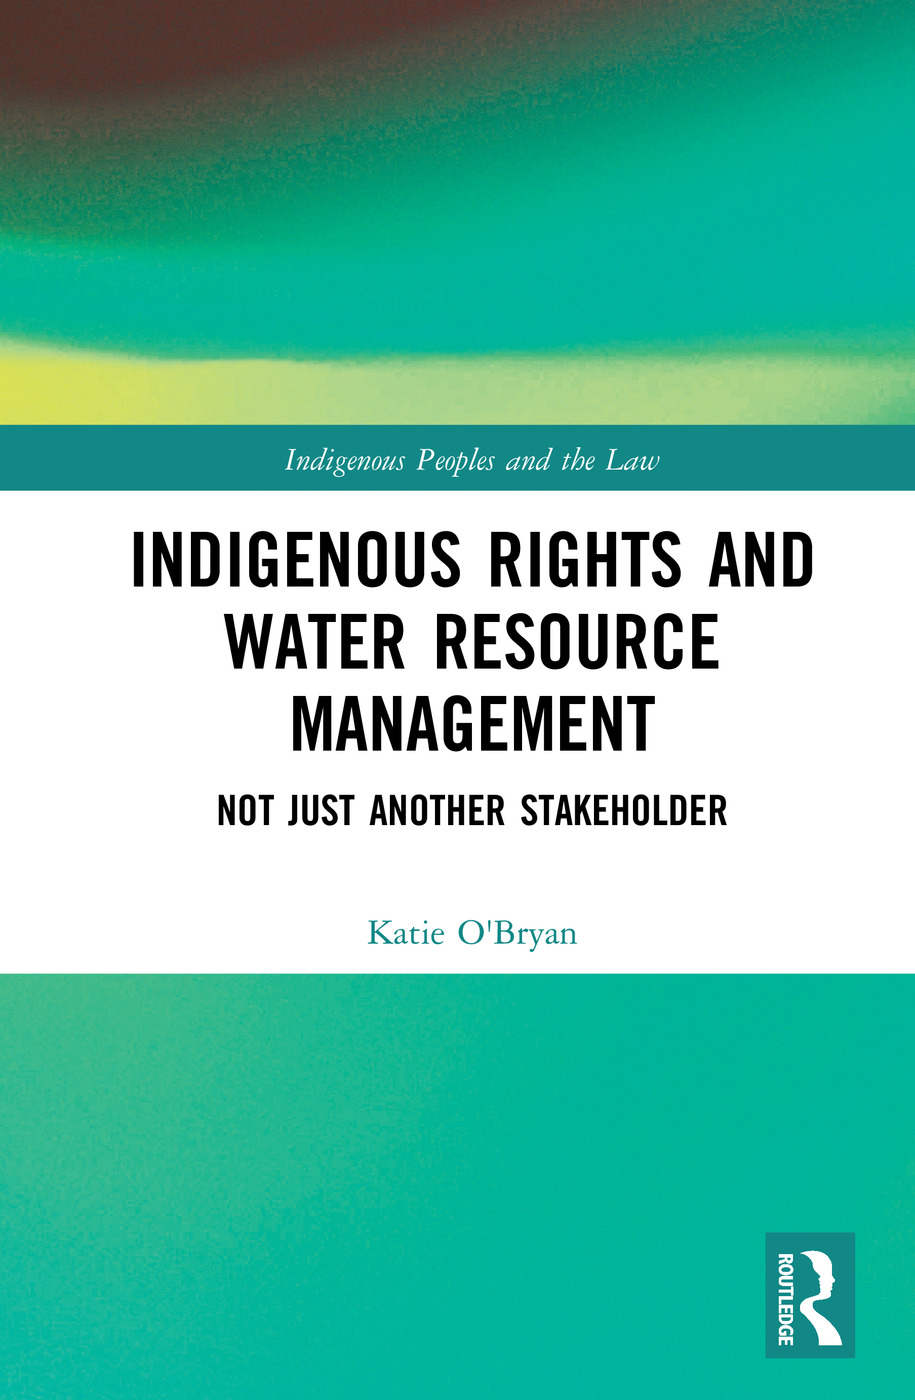 Indigenous Rights and Water Resource Management: Not Just Another Stakeholder book cover